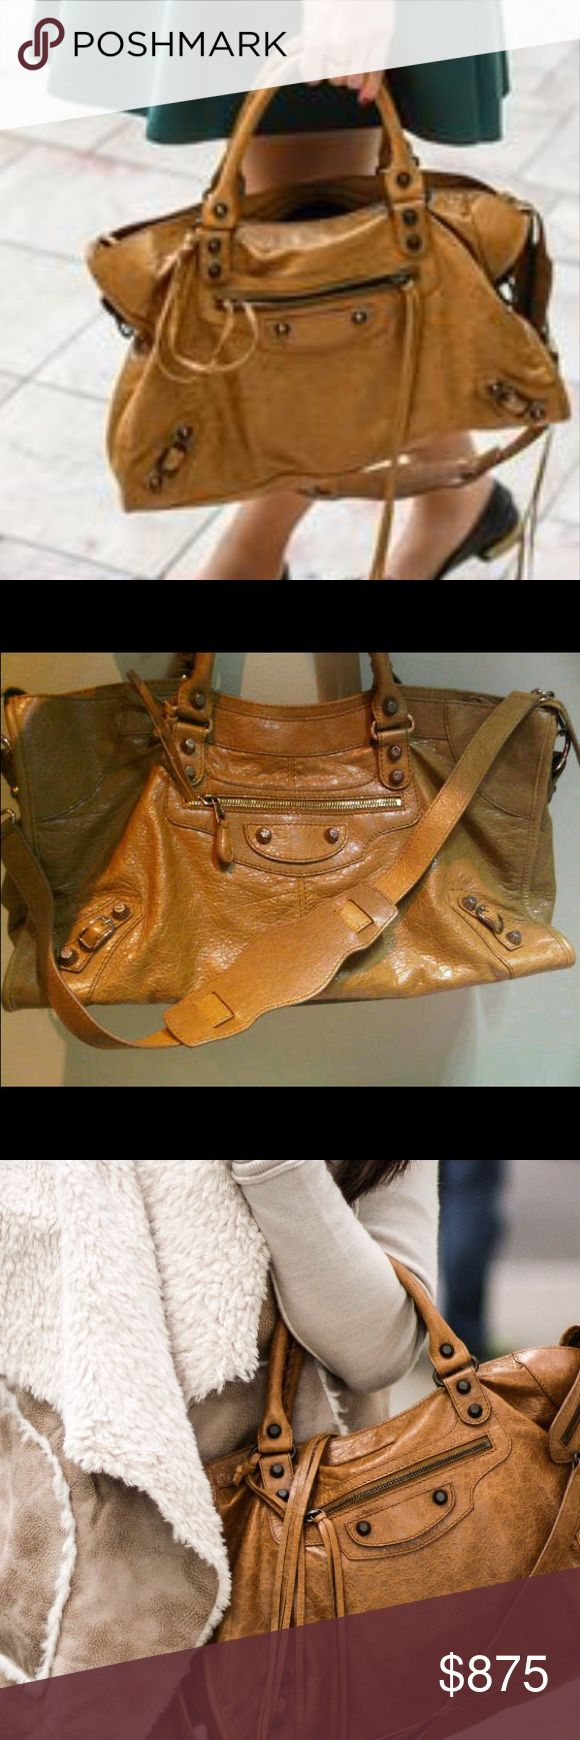 NWT Balenciaga part time cumin & dustbag Balenciaga part time in cumin. NWT. Also comes with dustbag. Never used. This is an authentic bag. I am trying to sell it so I can get a larger purse that fits my needs. Price is firm Balenciaga Bags Shoulder Bags